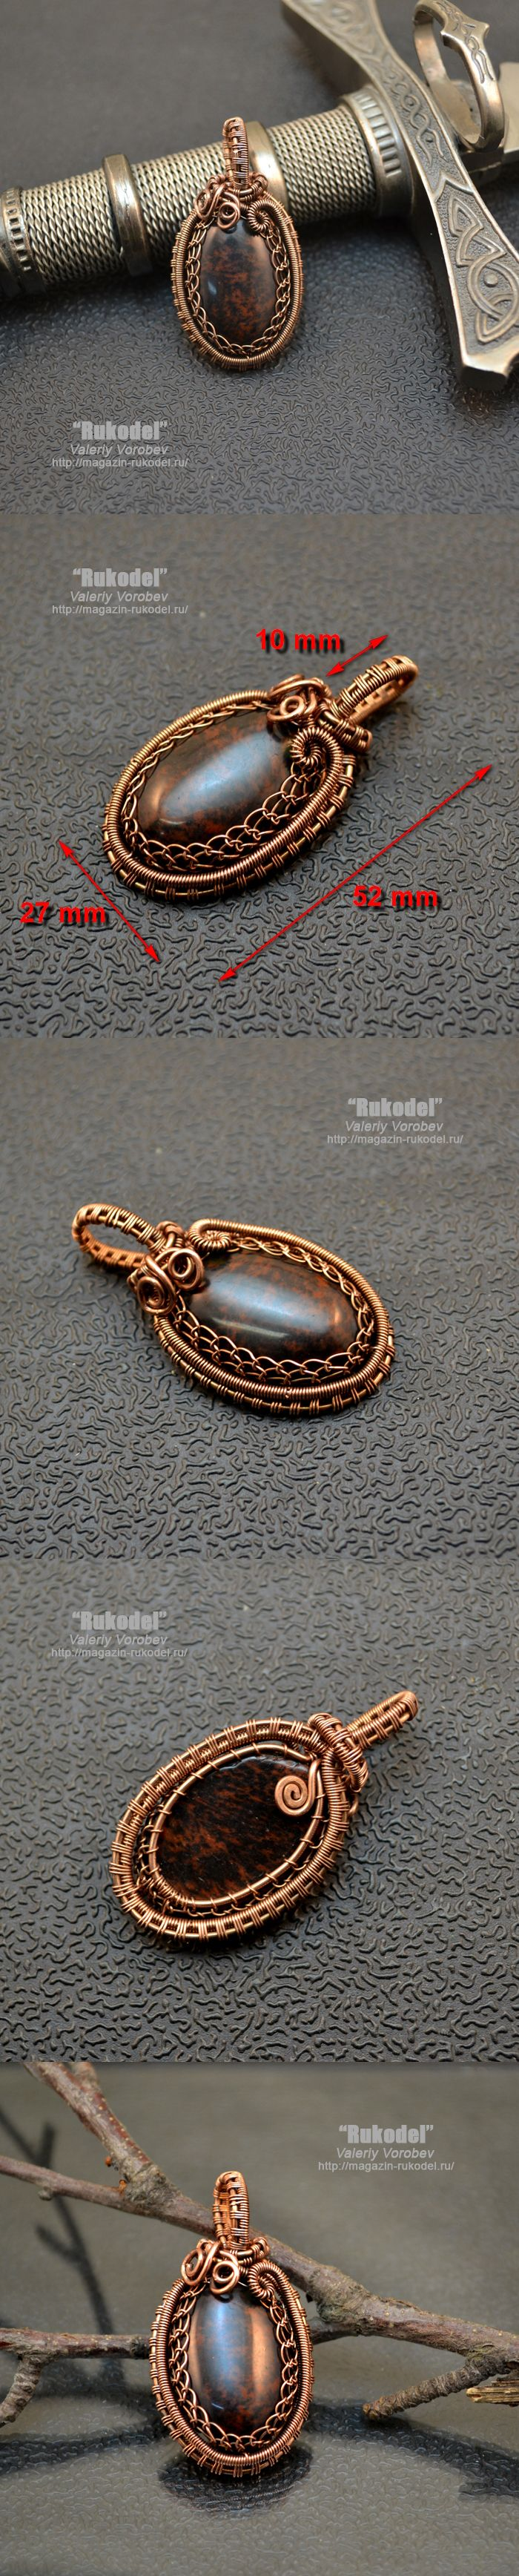 58 best Jewelry - wire net cabs images on Pinterest   Wire wrap ...